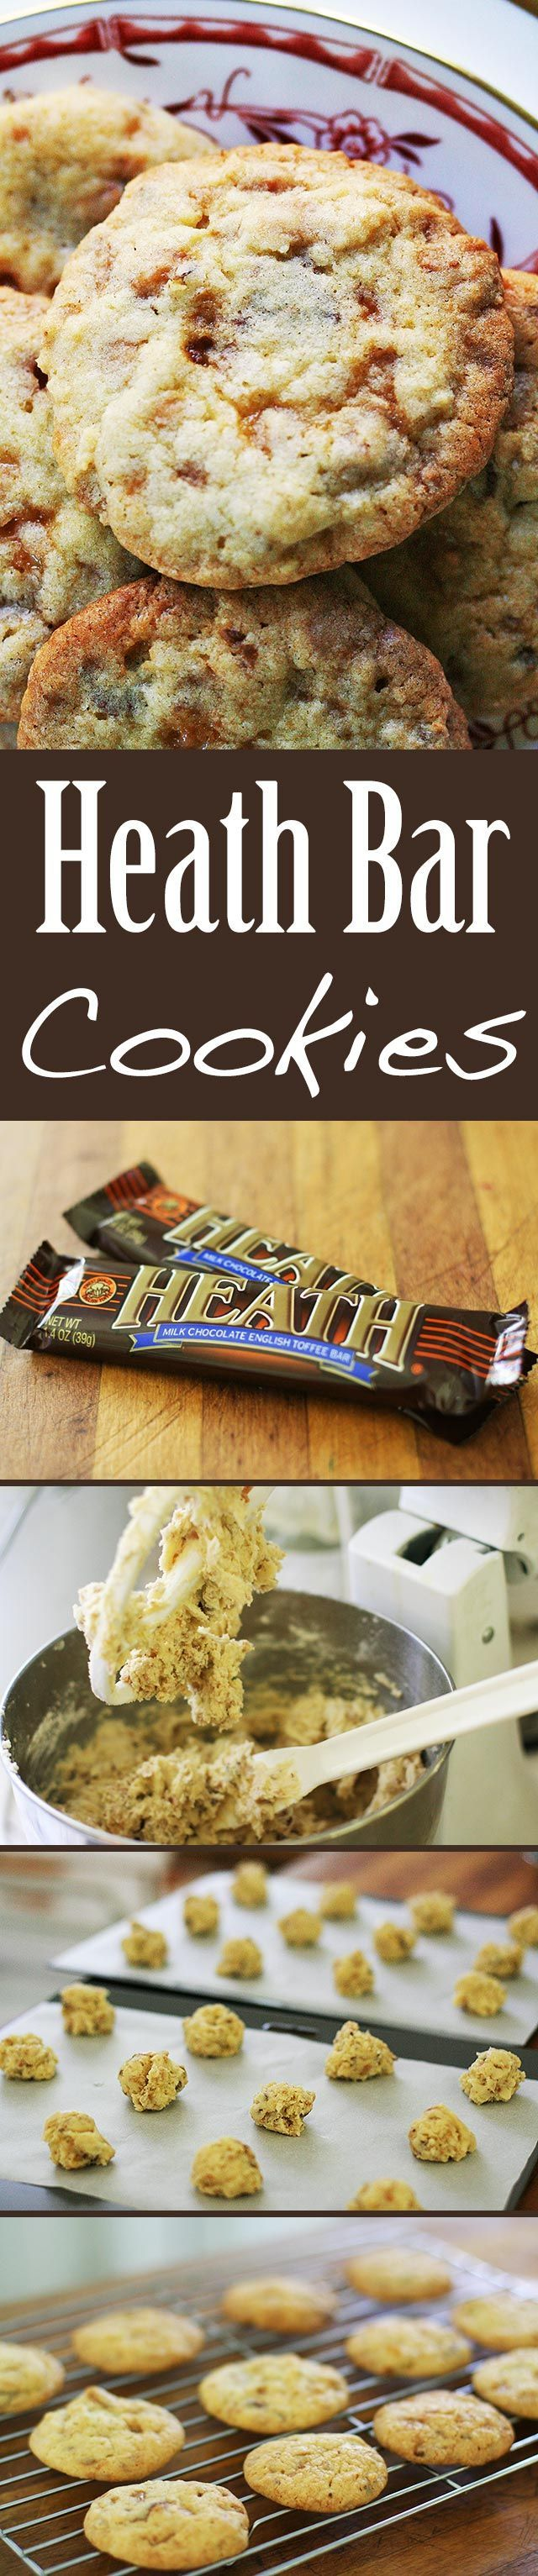 Irresistible Heath bar cookies! Made with chunks of Heath toffee bars. A perfect Christmas cookie ~ SimplyRecipes.com